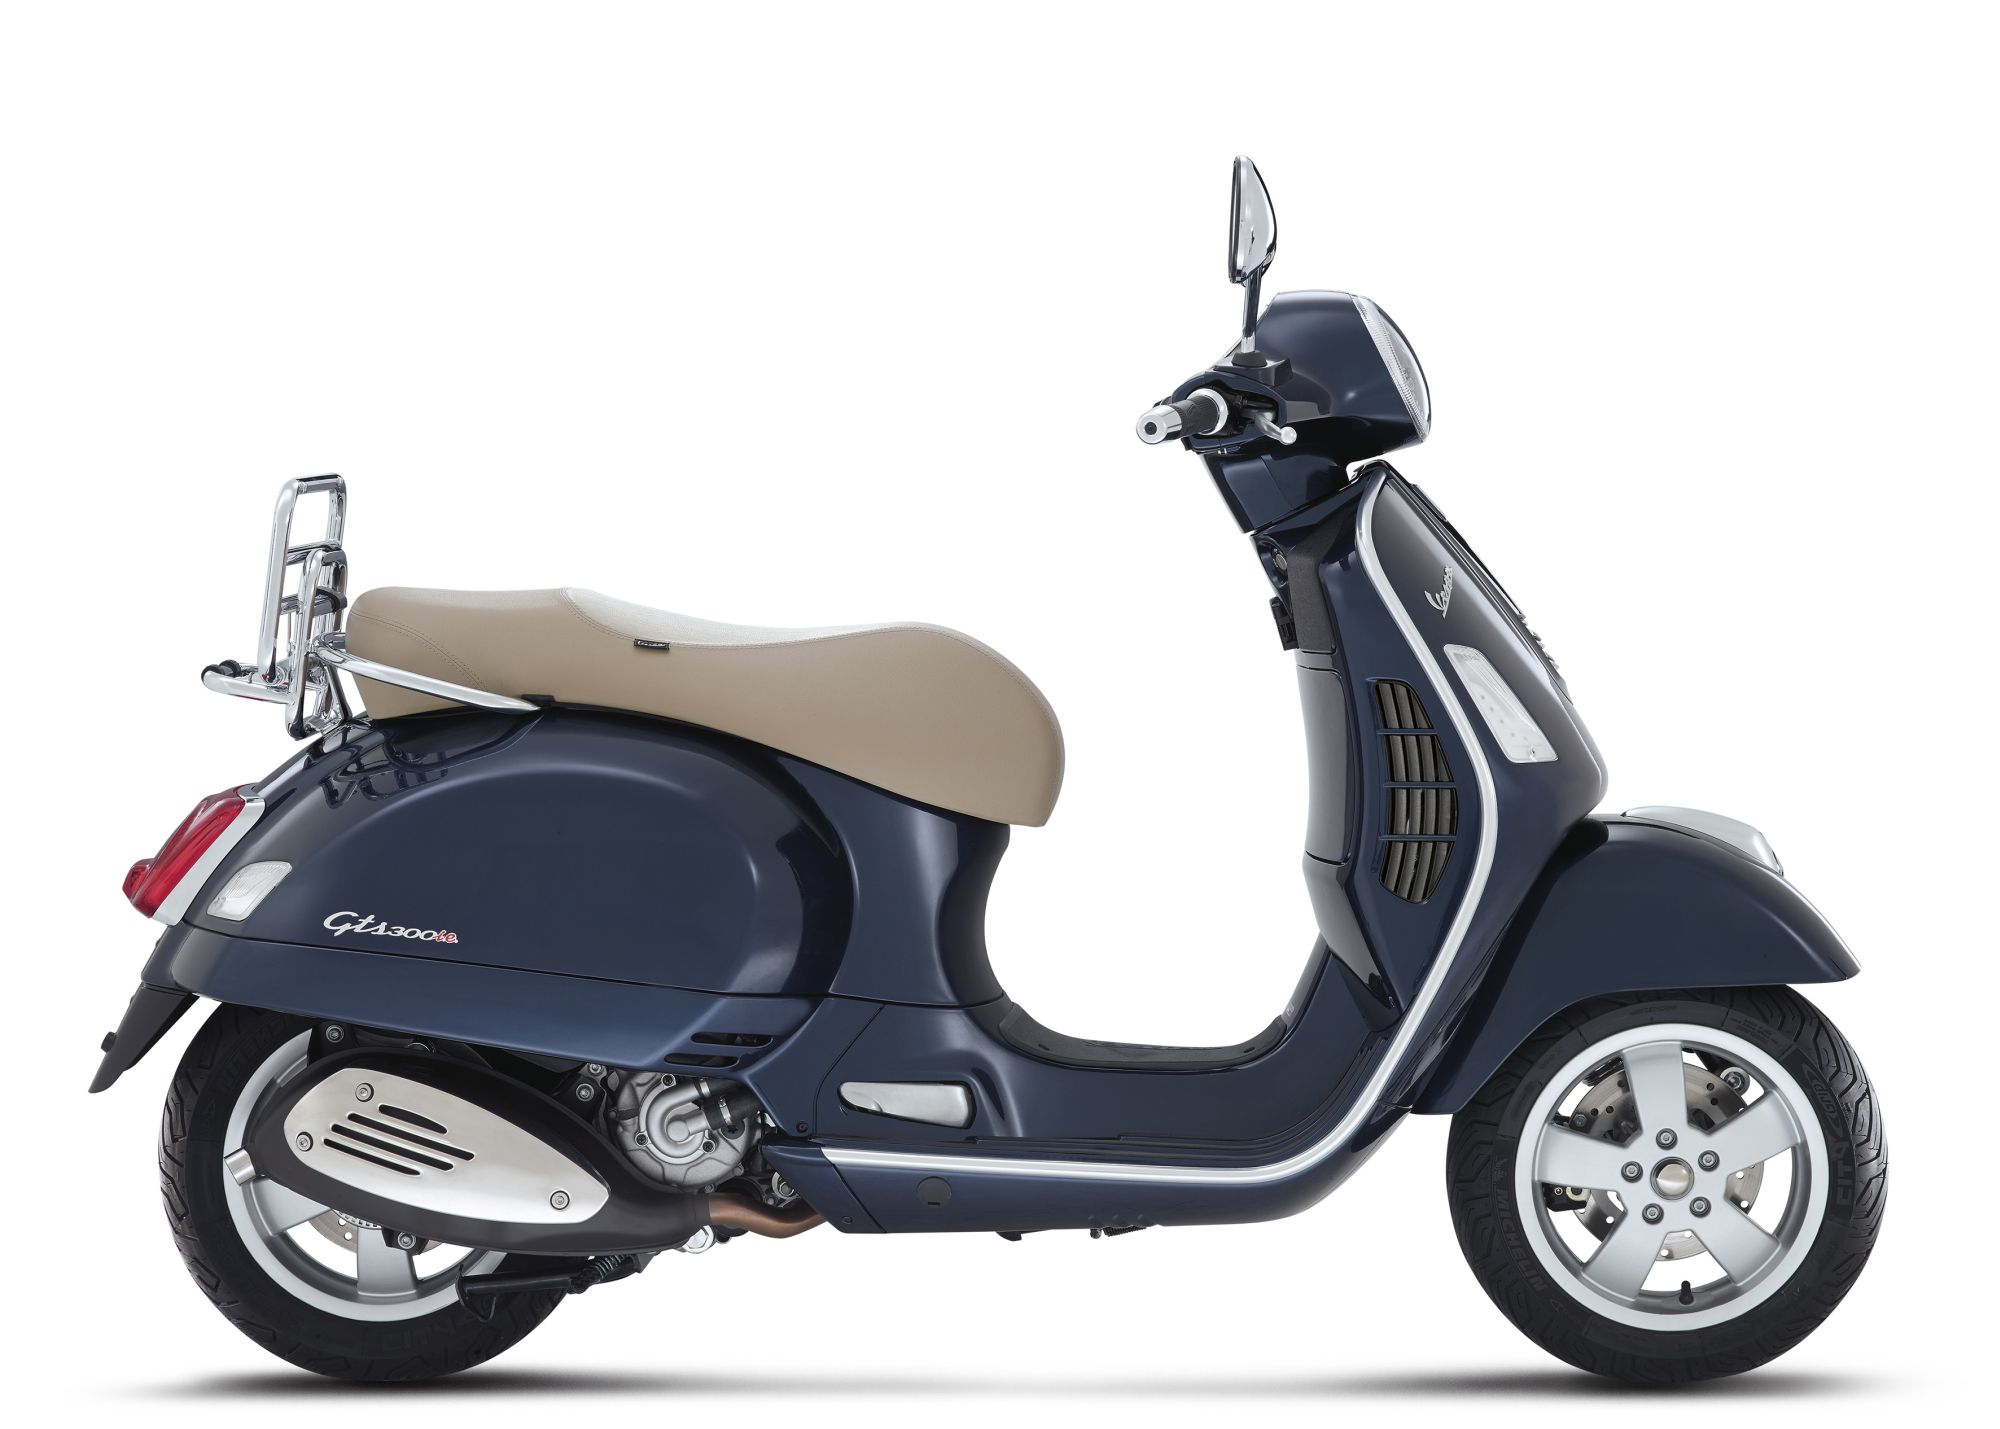 vespa gts 300 i e all technical data of the model gts. Black Bedroom Furniture Sets. Home Design Ideas